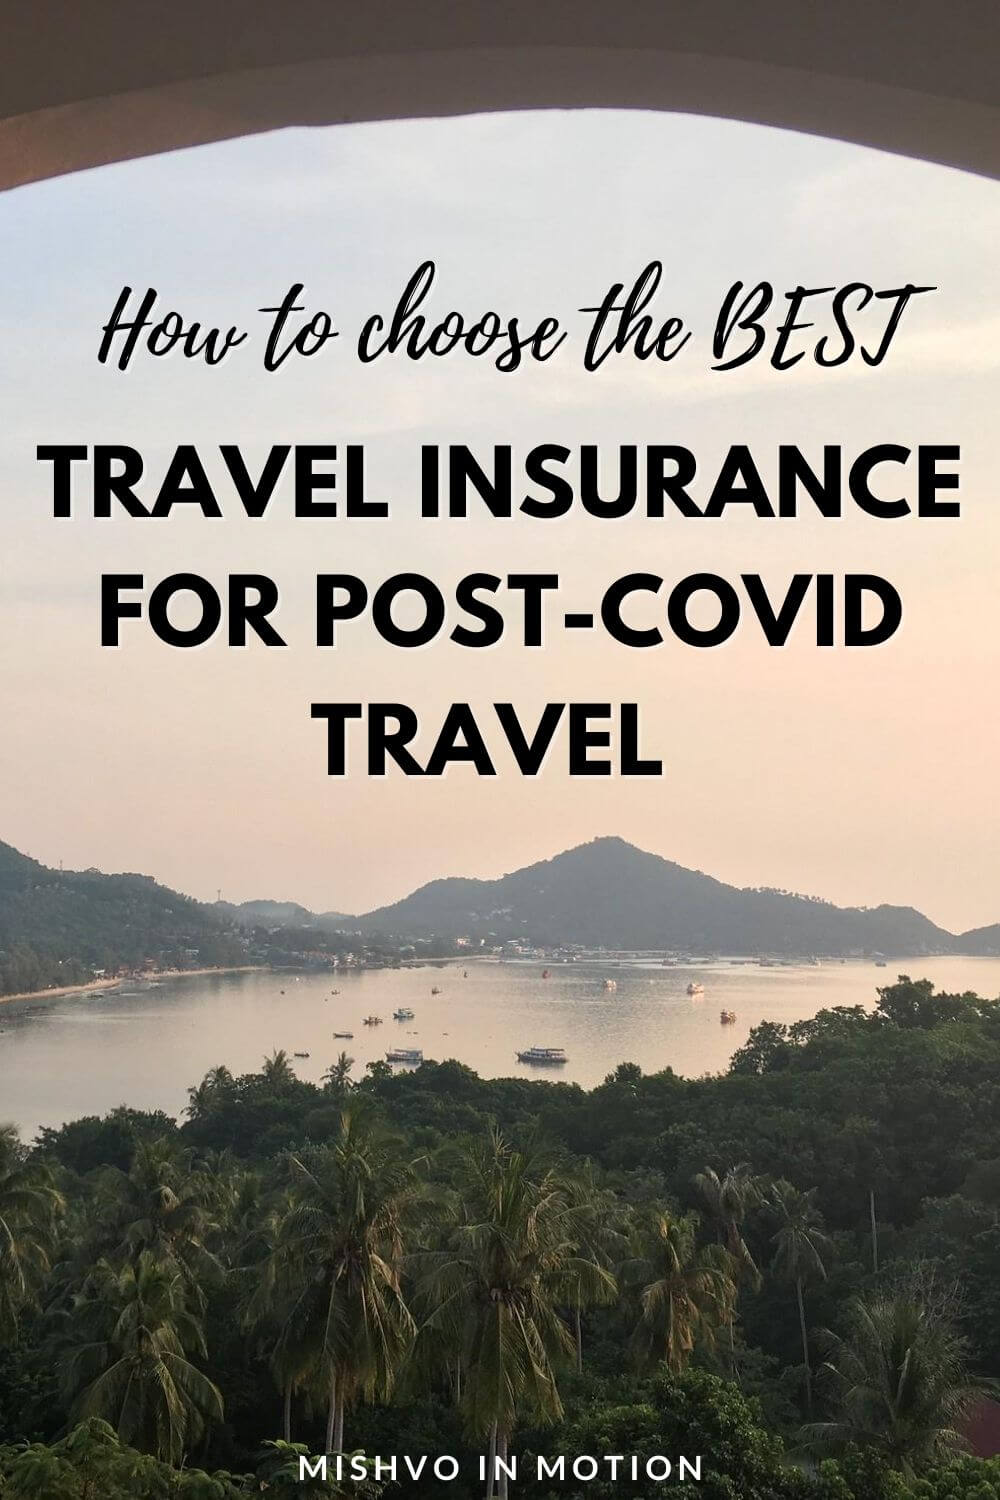 How to Choose the Best Travel Insurance for COVID